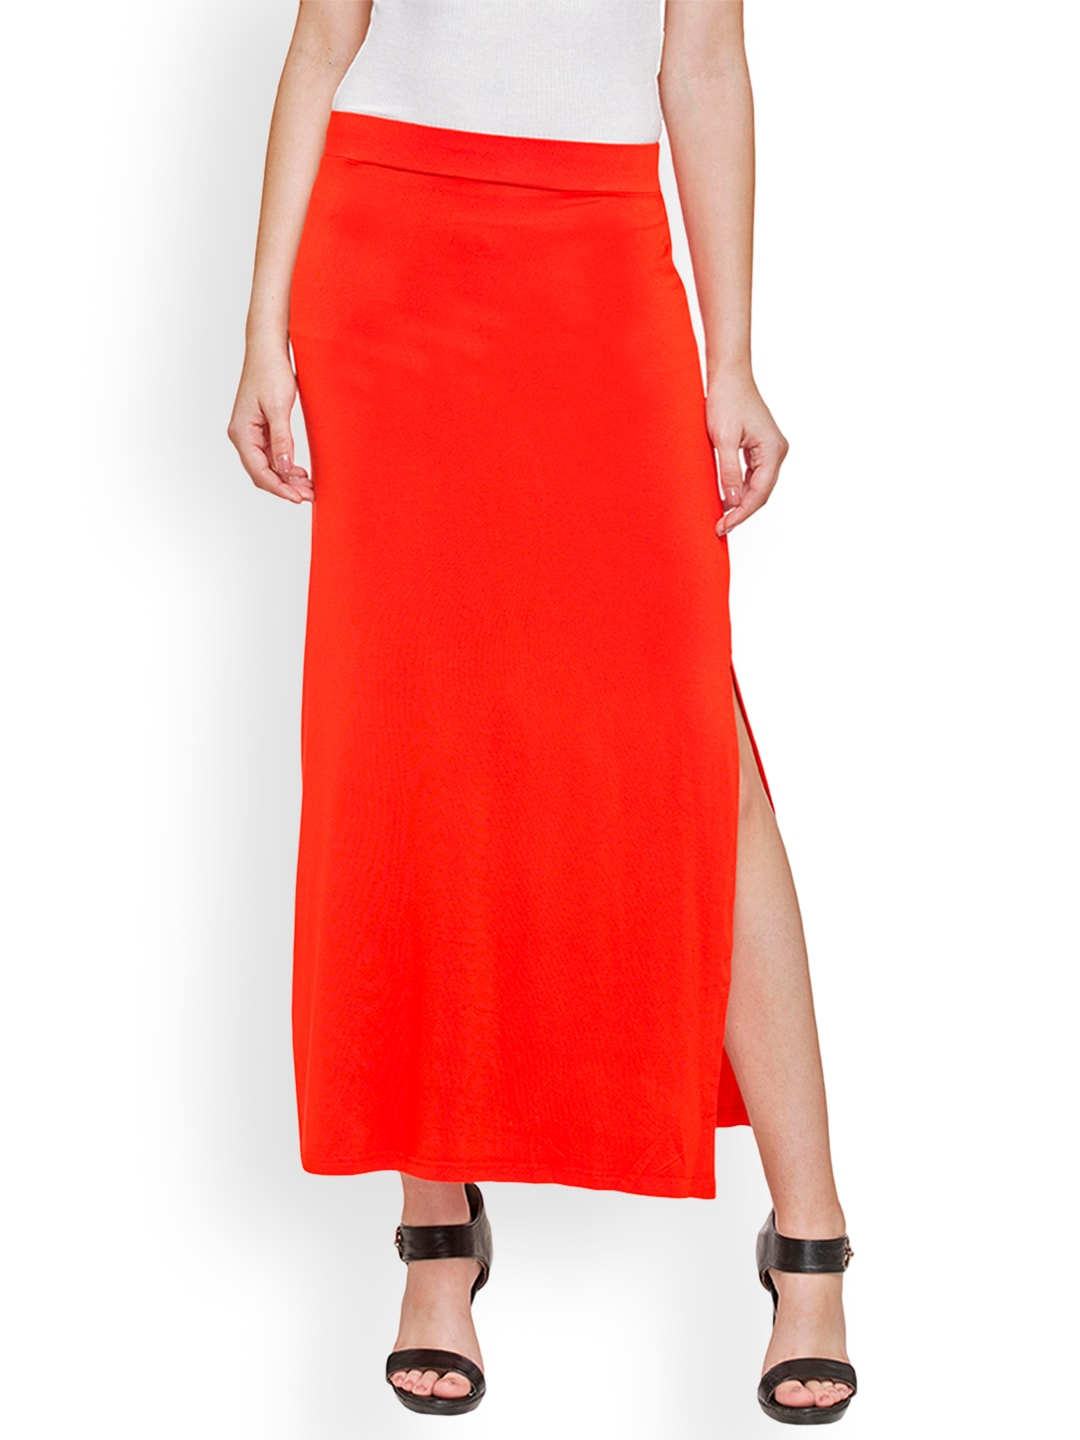 3c1dee245 Red Women Skirts - Buy Red Women Skirts online in India